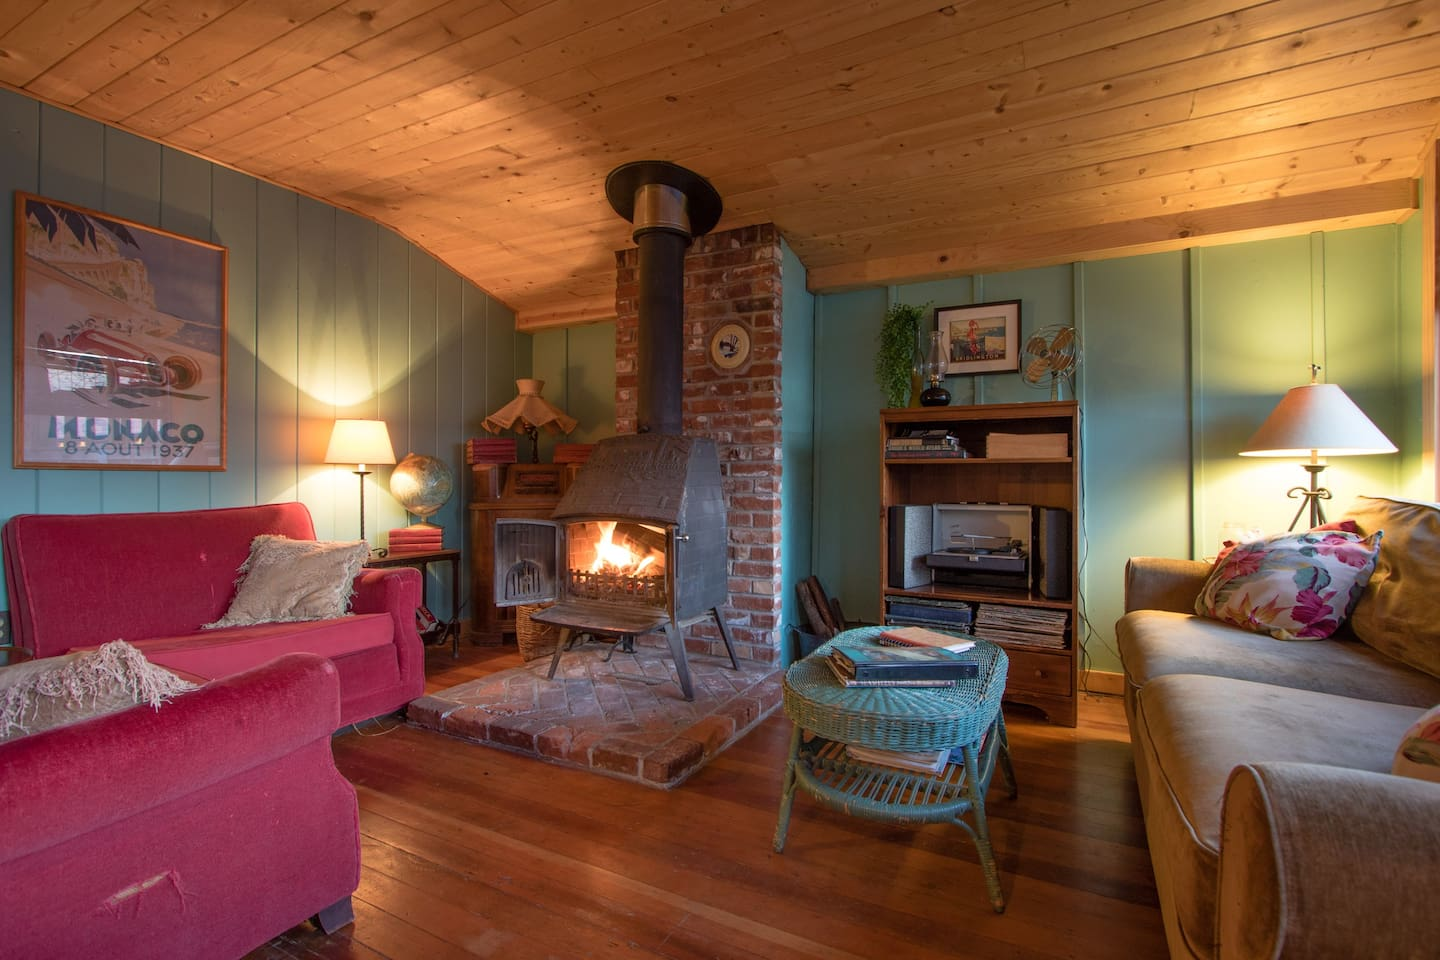 Cozy fireplace, bring plenty of wood or purchase at local market.